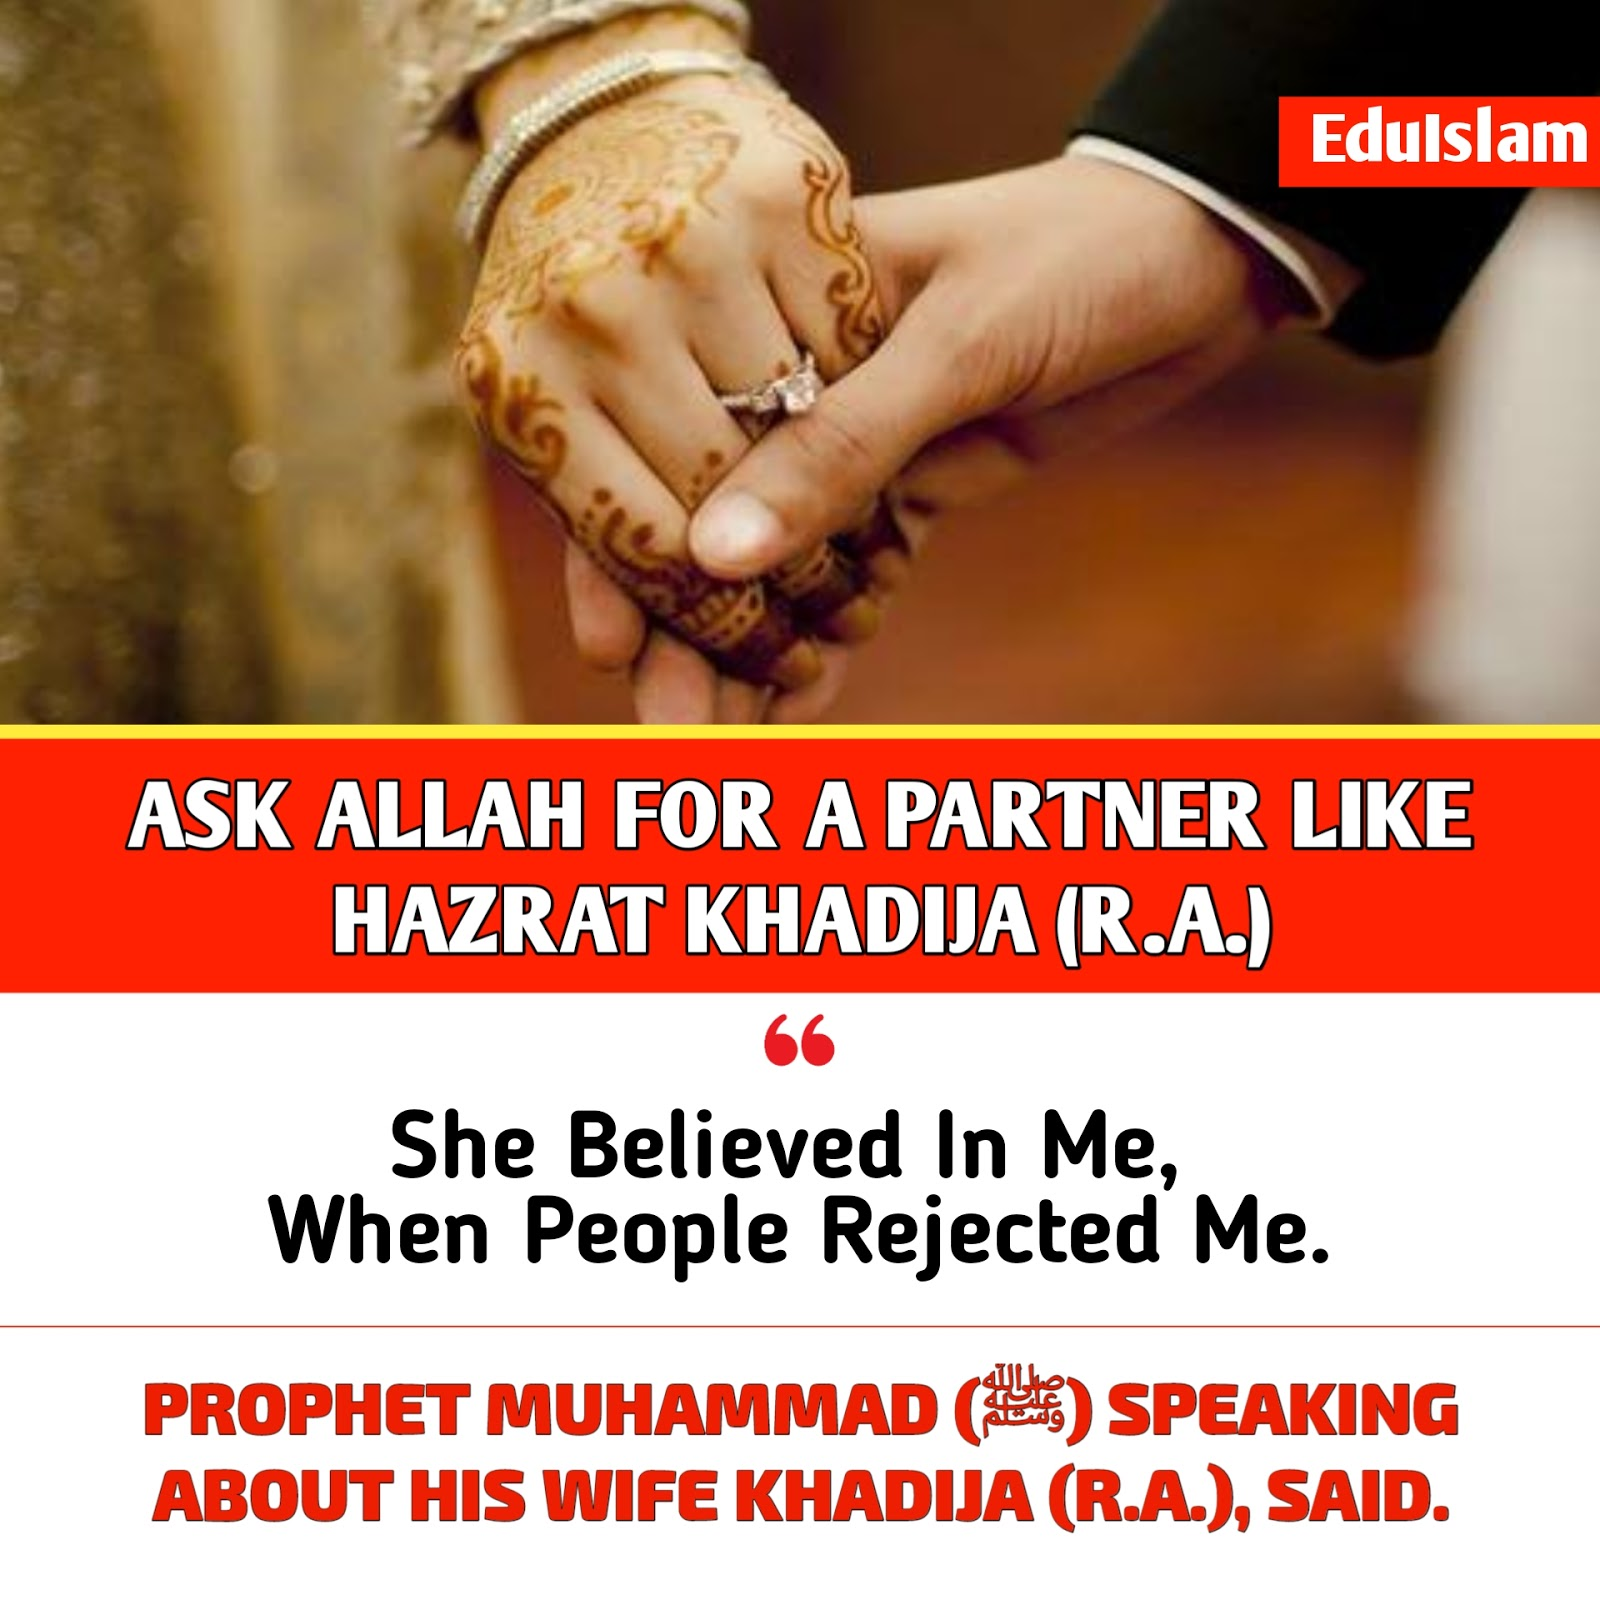 She believe in me, Prophet Muhammad about His wife Khadija, Khadeeja r.a., Qualities of wife in Islam, Muslim Woman, Islam pearls, Hadith about wife, ask Allah for a Partner, Muhammad ﷺ about Khadija, Facts about Khadeeja r.a.